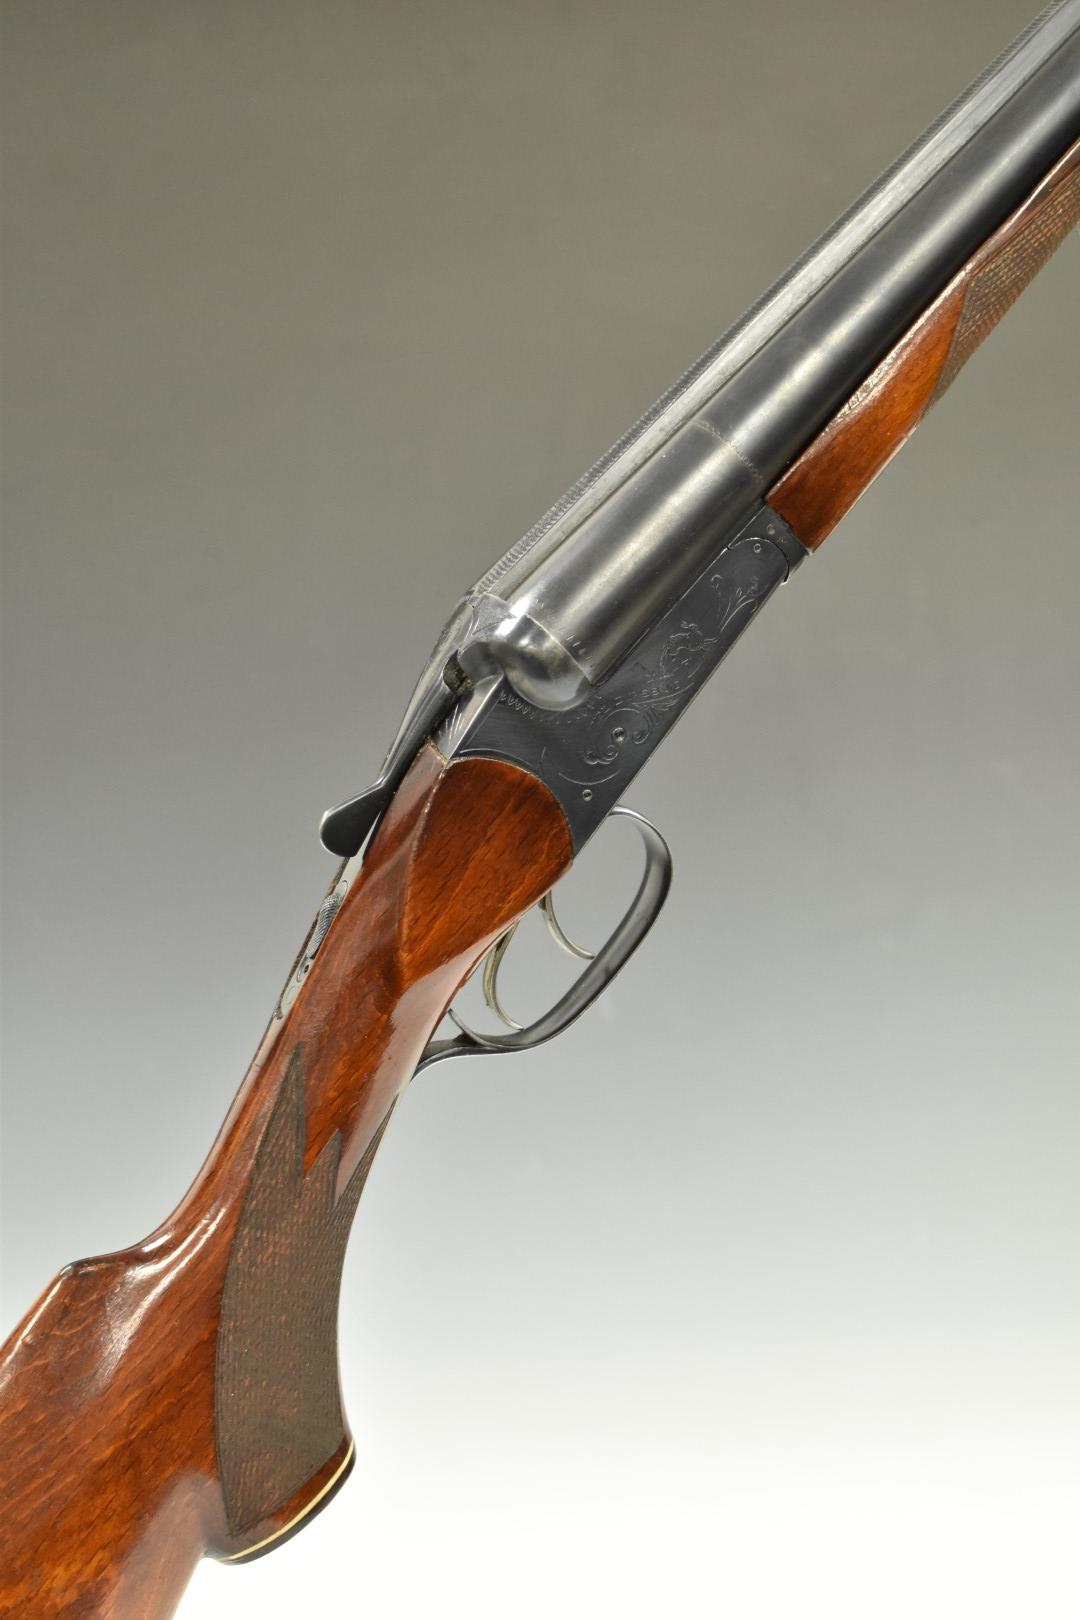 Baikal IJ-58-M 12 bore side by side shotgun with heavy engraving of dogs to the locks, chequered